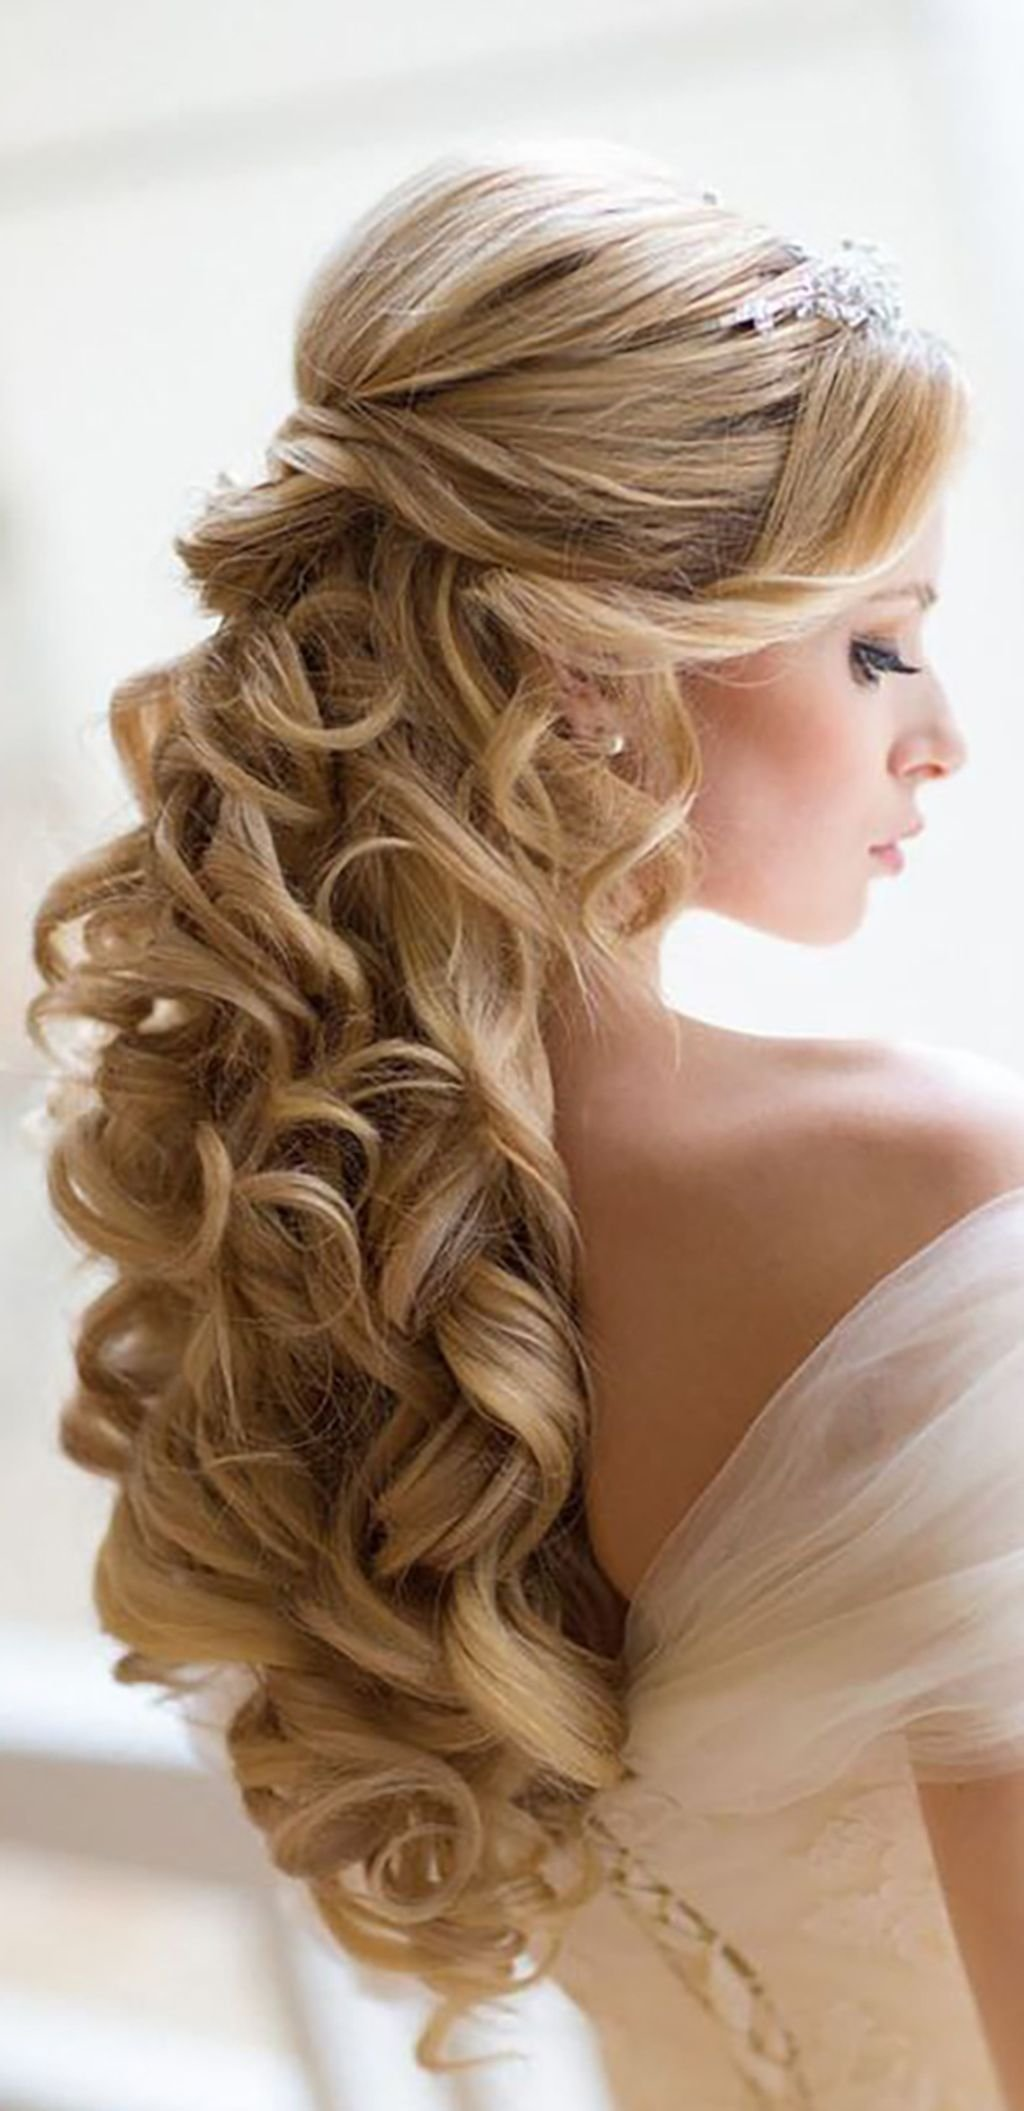 10 Famous Hairstyles Ideas For Long Hair 86 classy wedding hairstyle ideas for long hair women weddings 2020